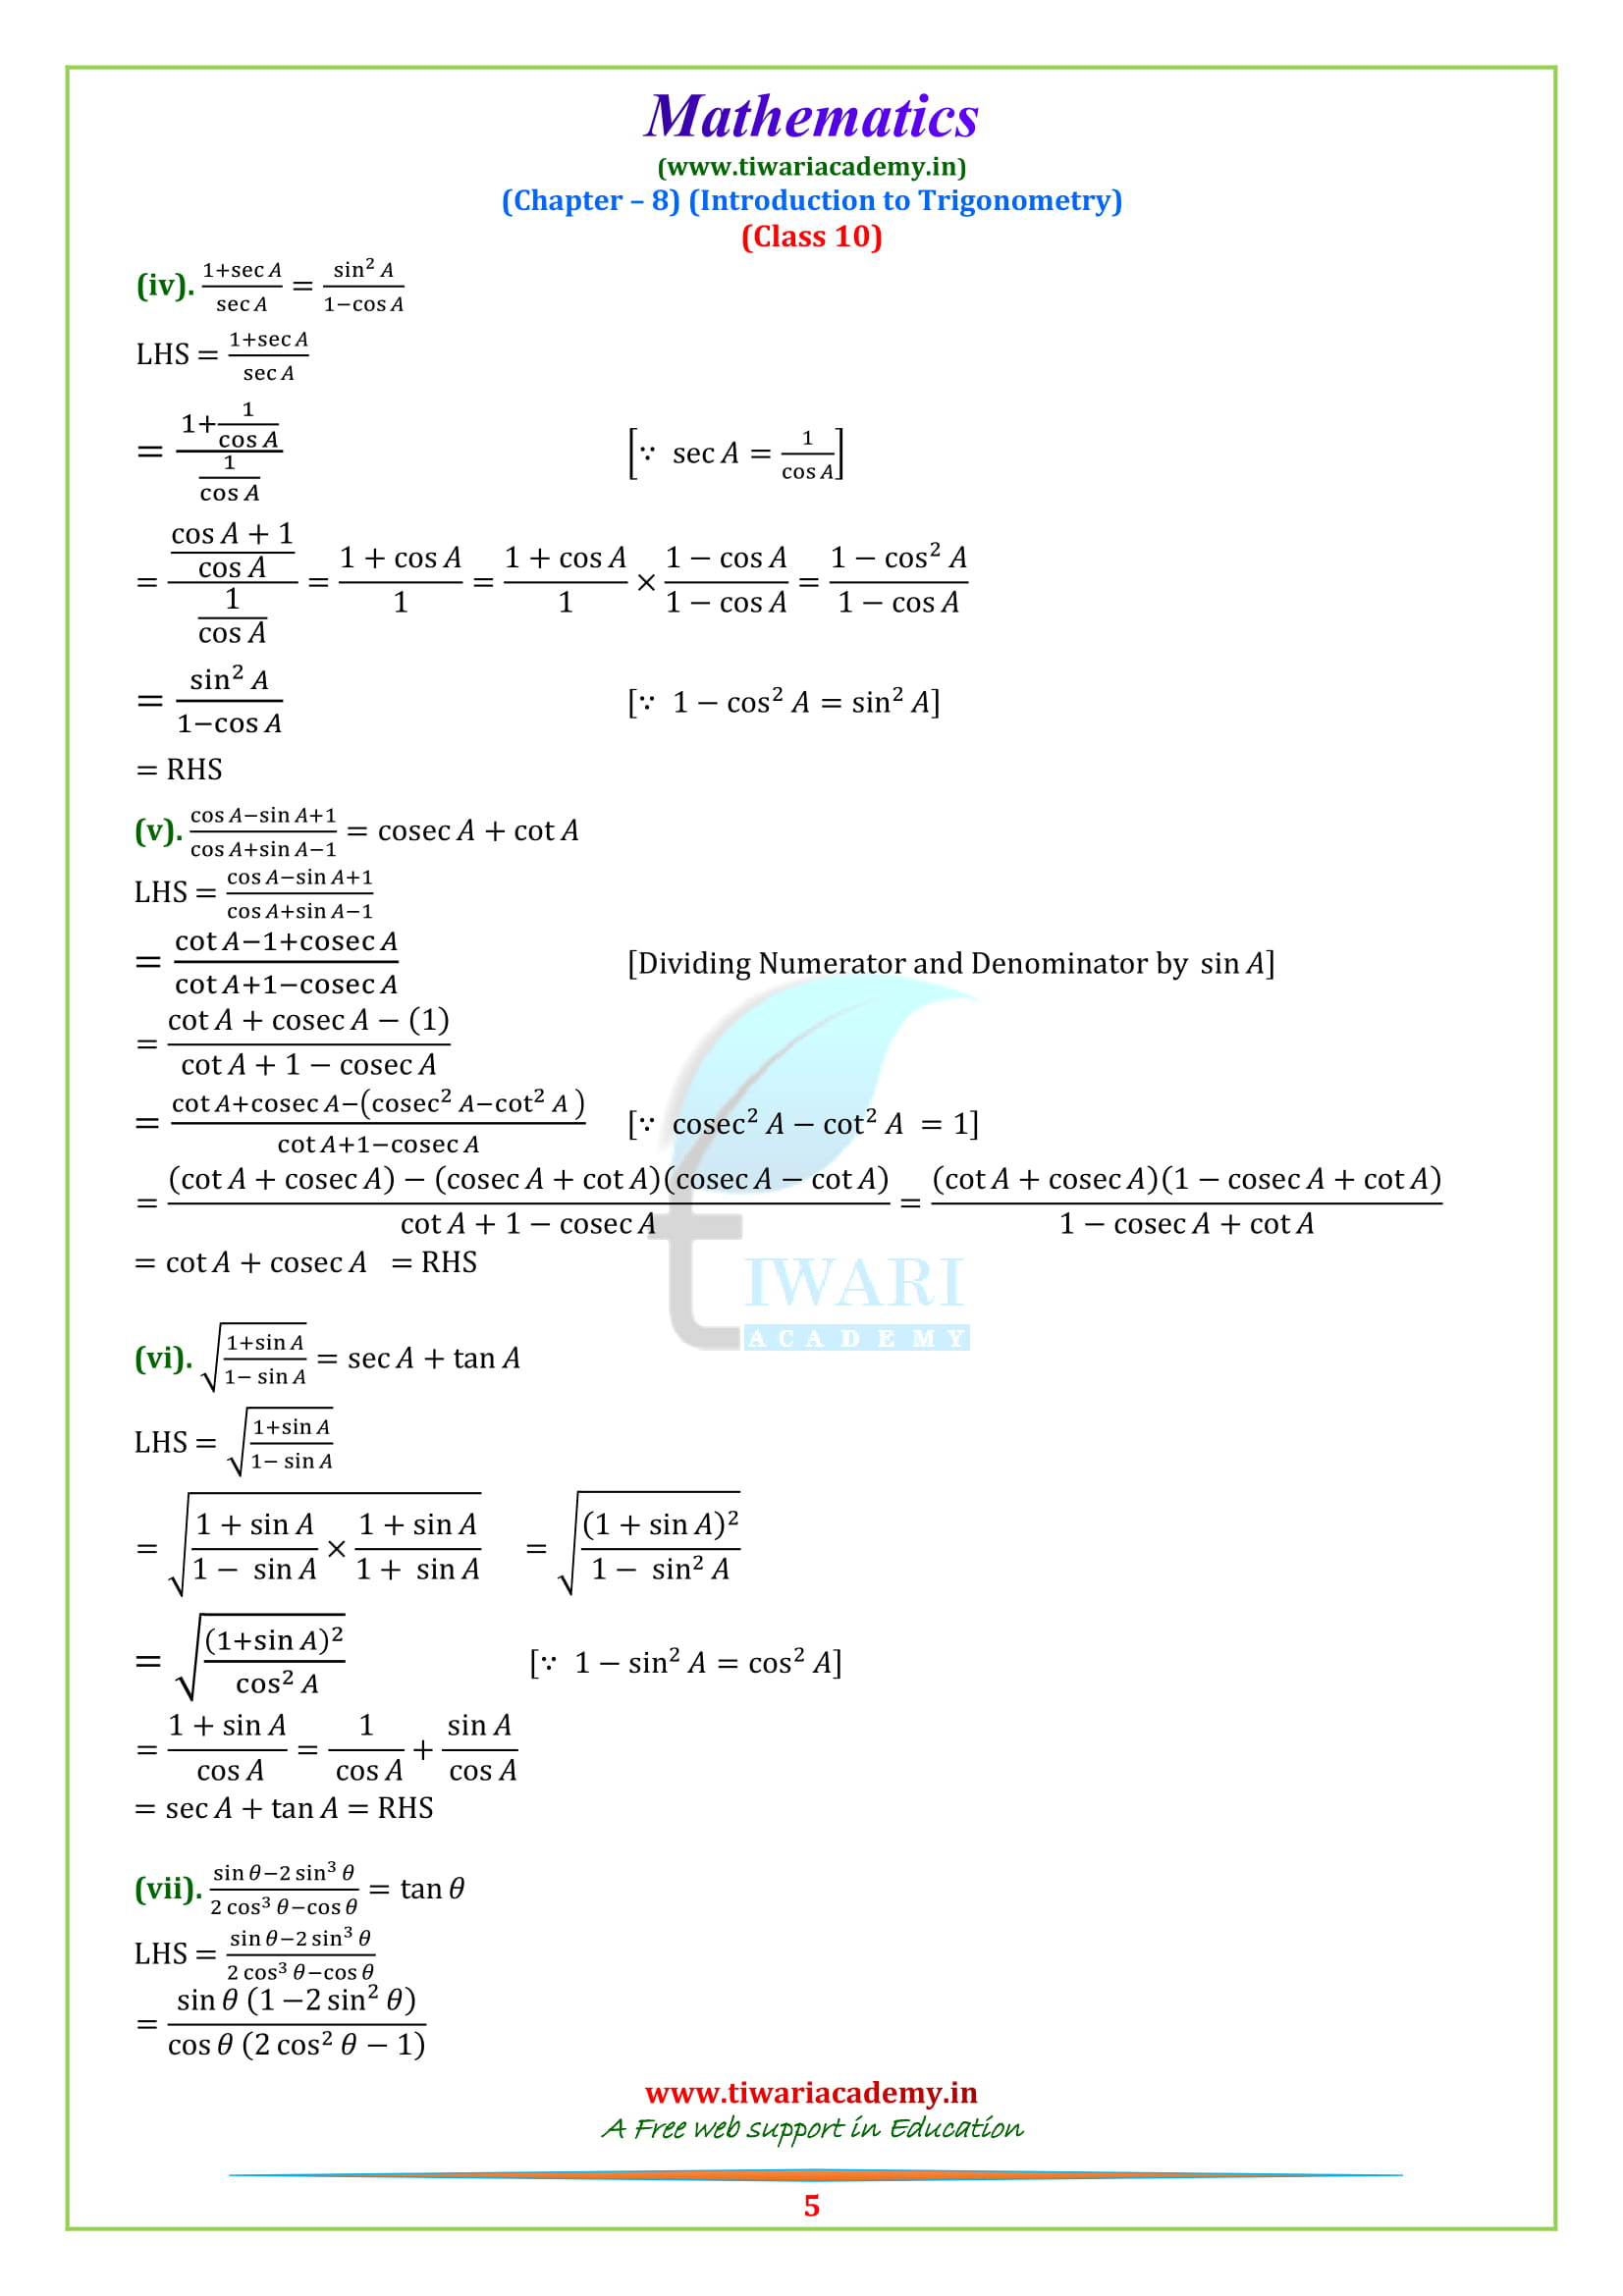 NCERT Solutions for class 10 Maths Chapter 8 Exercise 8.4 download in updated pdf